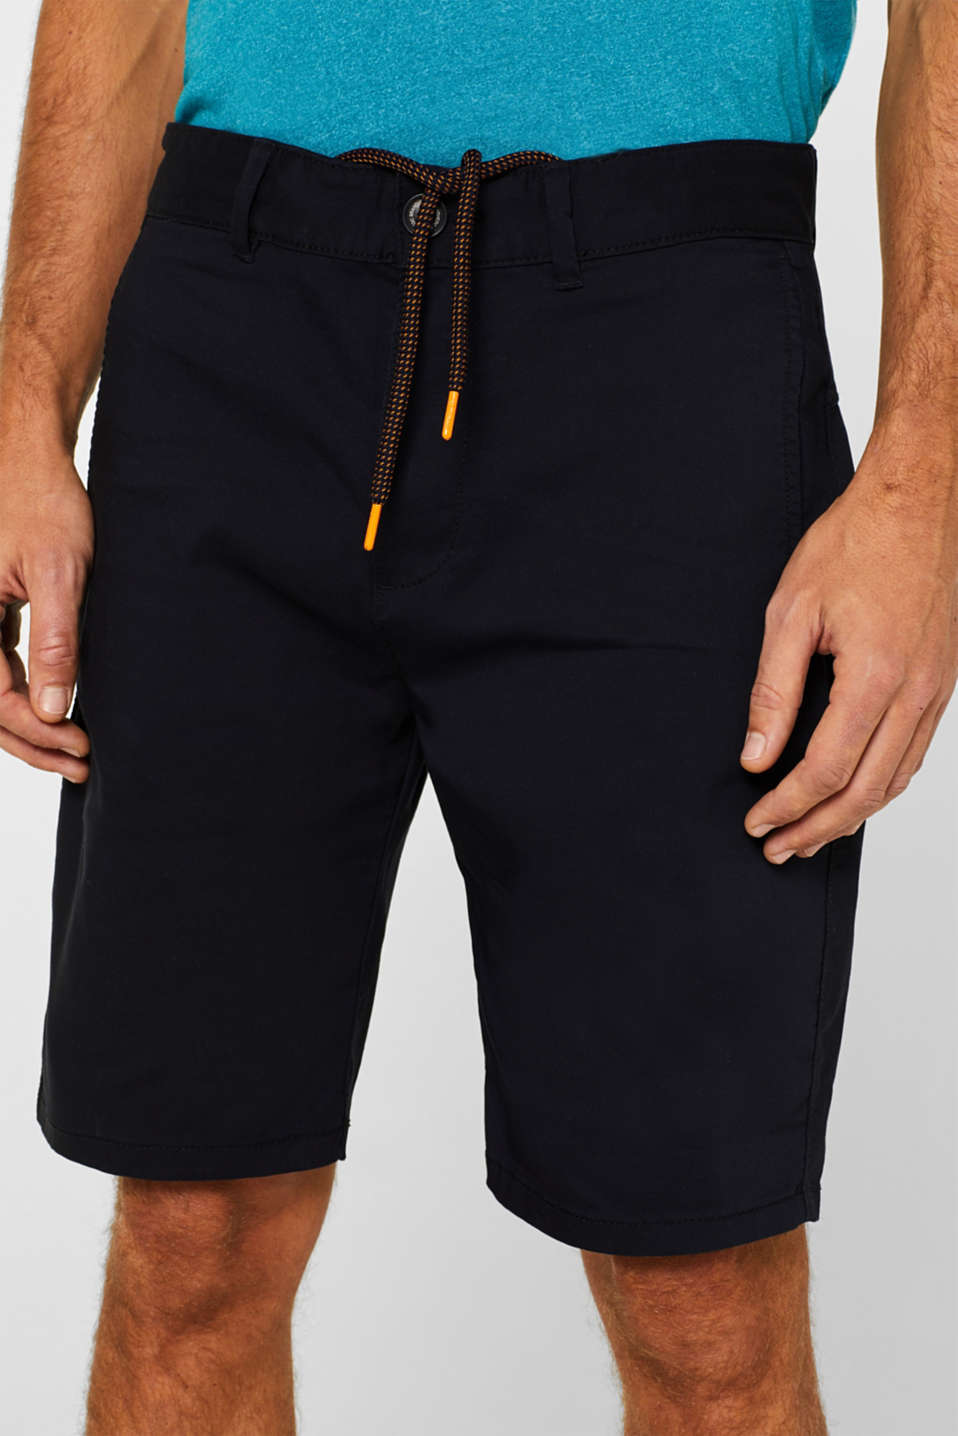 Shorts woven Slim fit, NAVY, detail image number 2